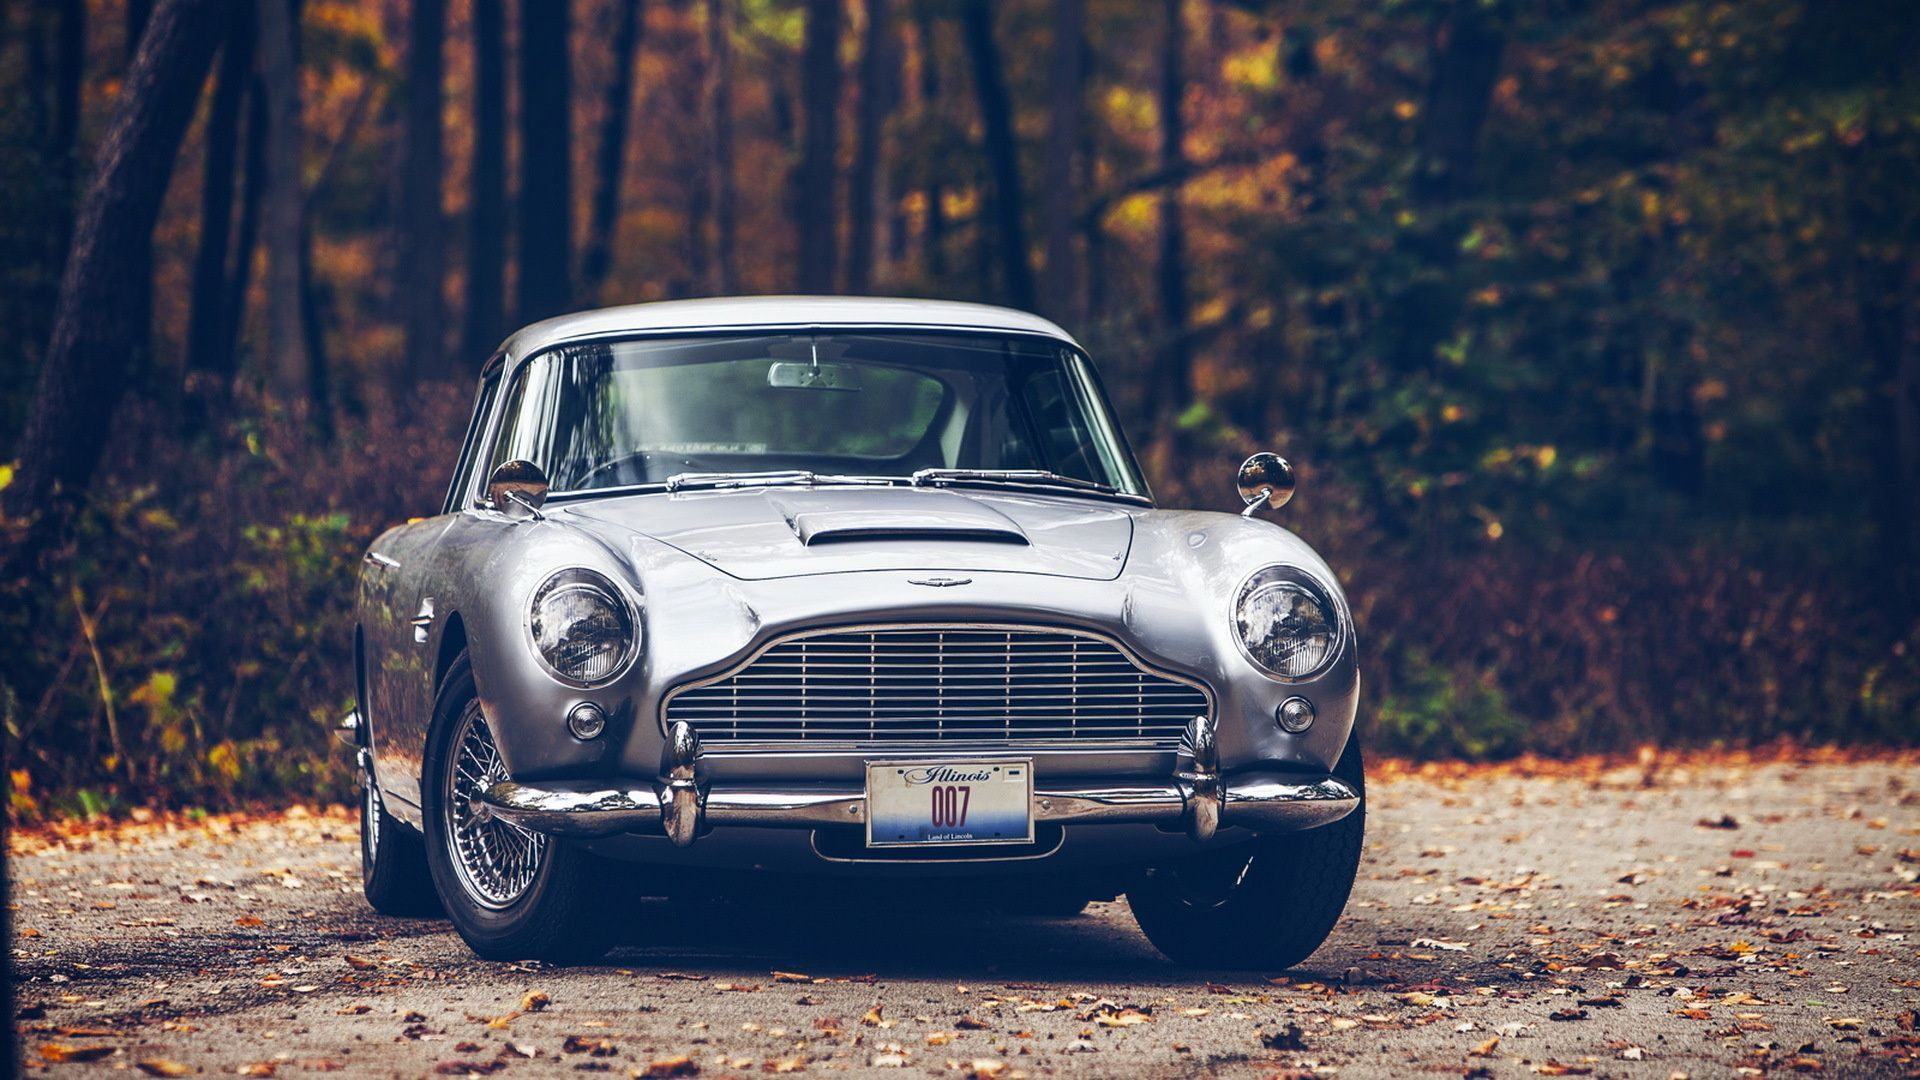 36+ car 1080p full screen hd wallpapers for pc pictures. Full Hd 1080p Cars Wallpapers Desktop Backgrounds Aston Martin Db5 1920x1080 Wallpaper Teahub Io